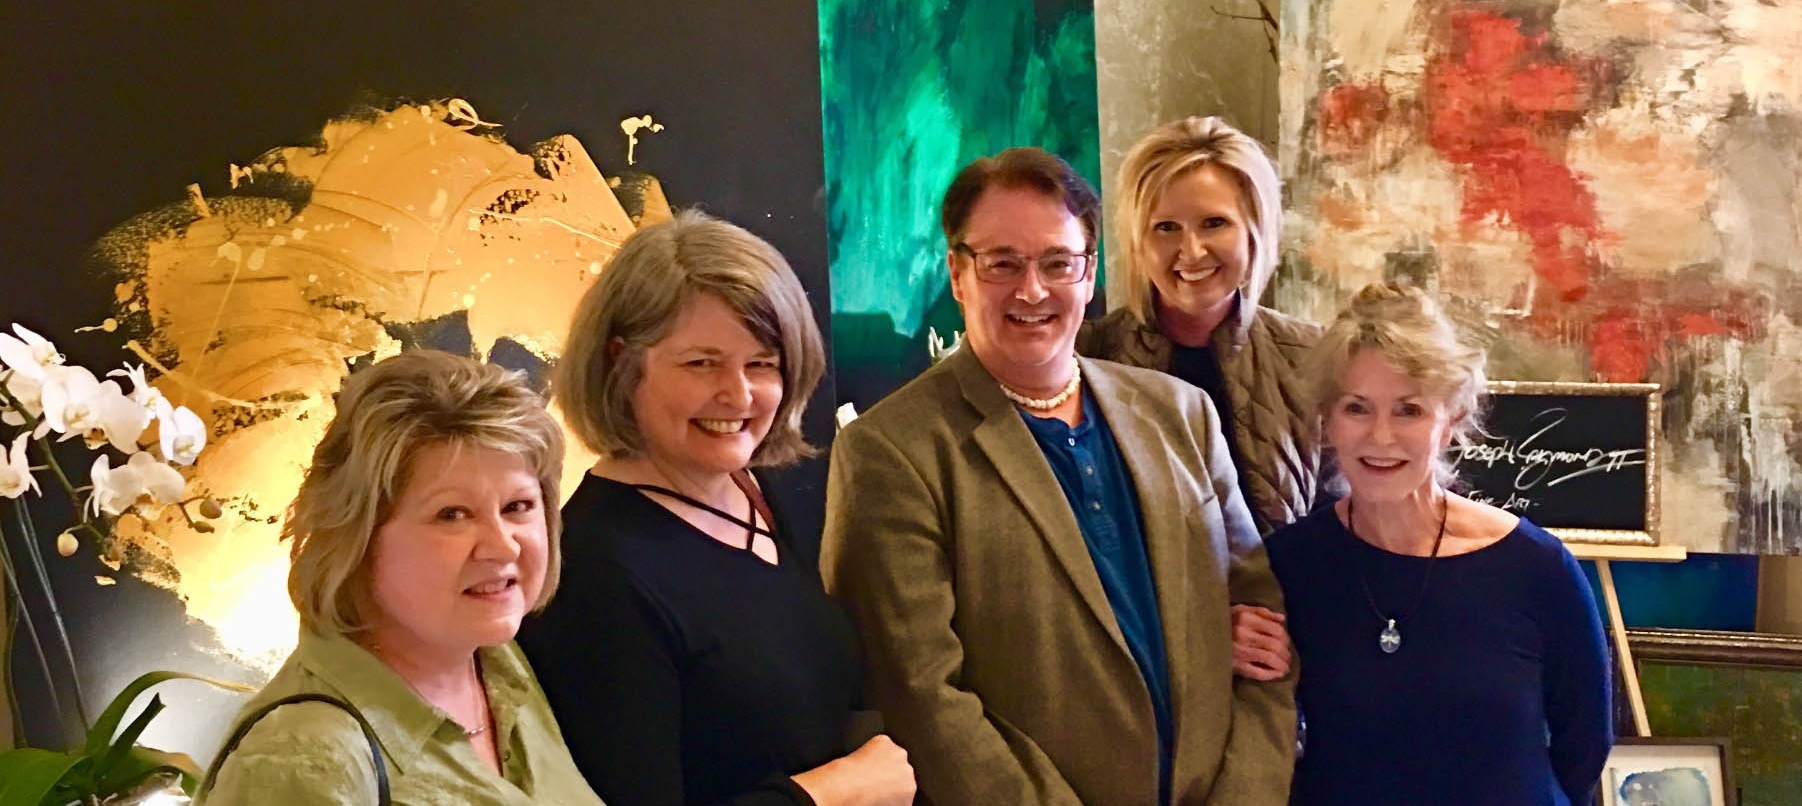 This past December, Suzan Rogers, Kathy Hudson, Christopher, Mary Beth Dwight and Stephanie Fussell attended Women for the Arts' Open House and Arts Market at the Regional Arts Center.